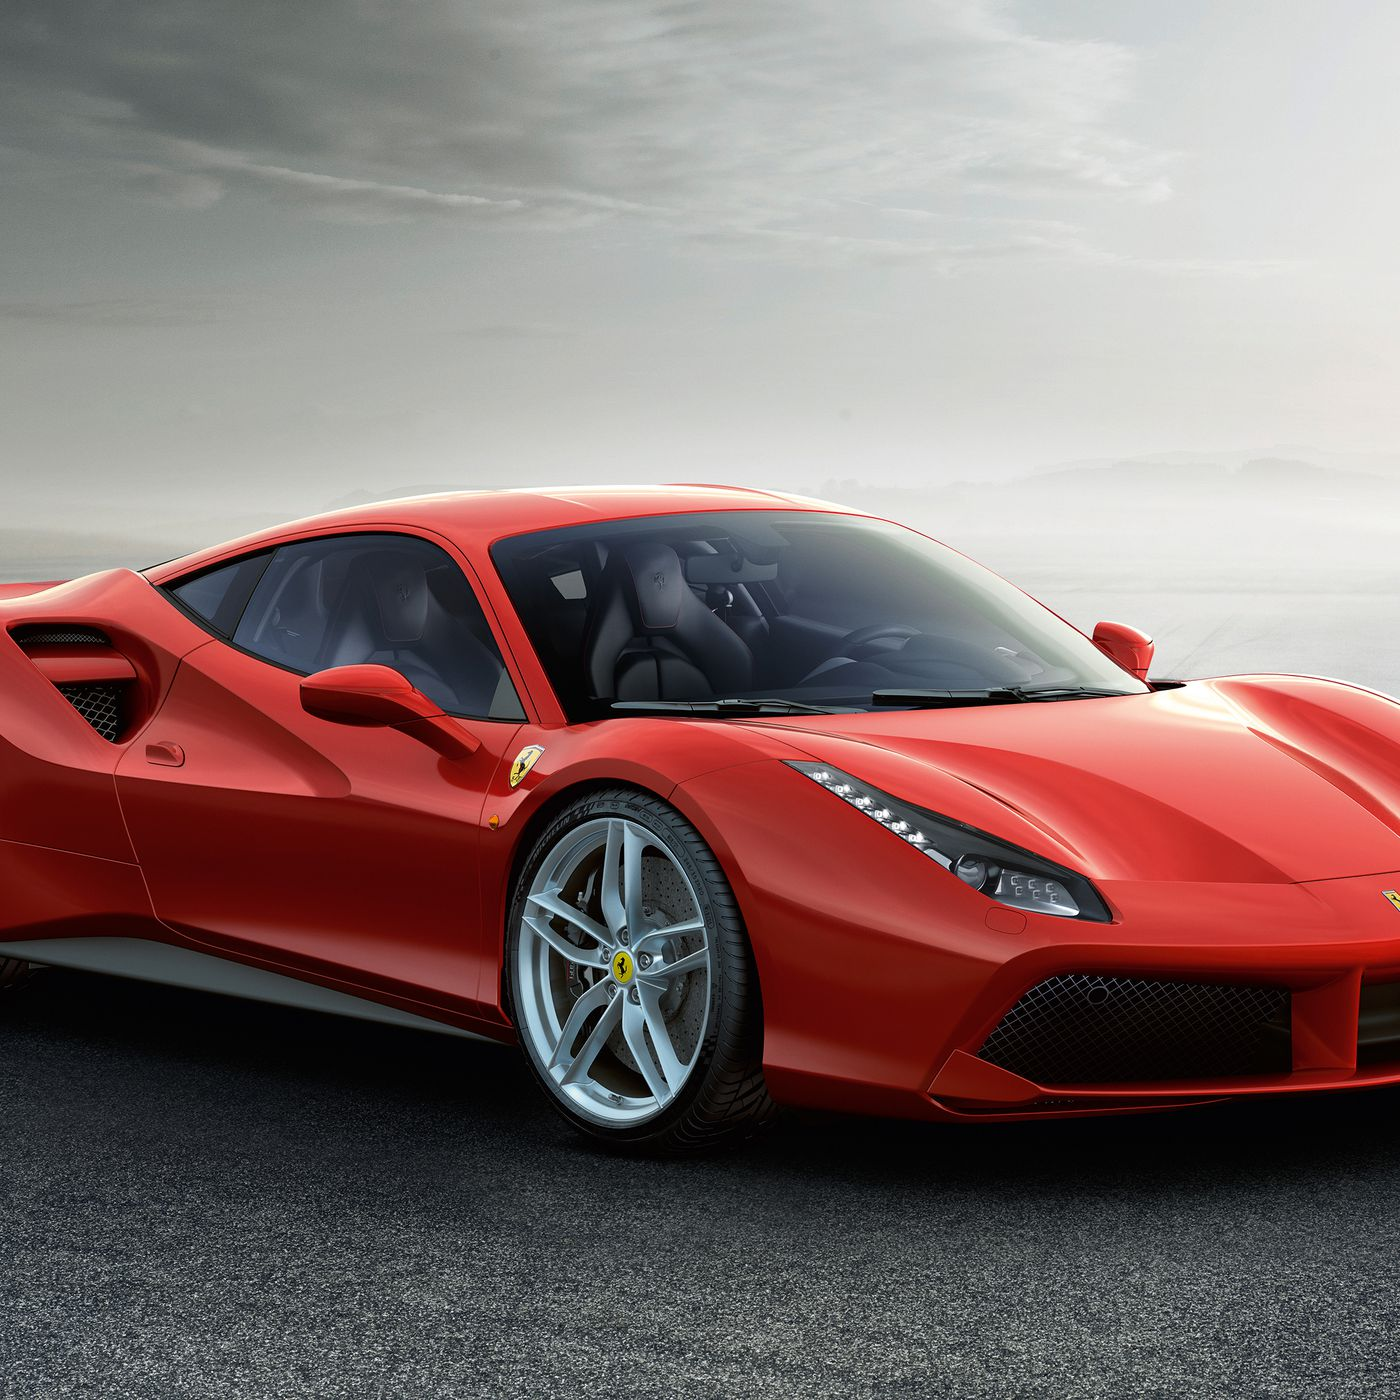 What s so special about a Ferrari anyway The Verge